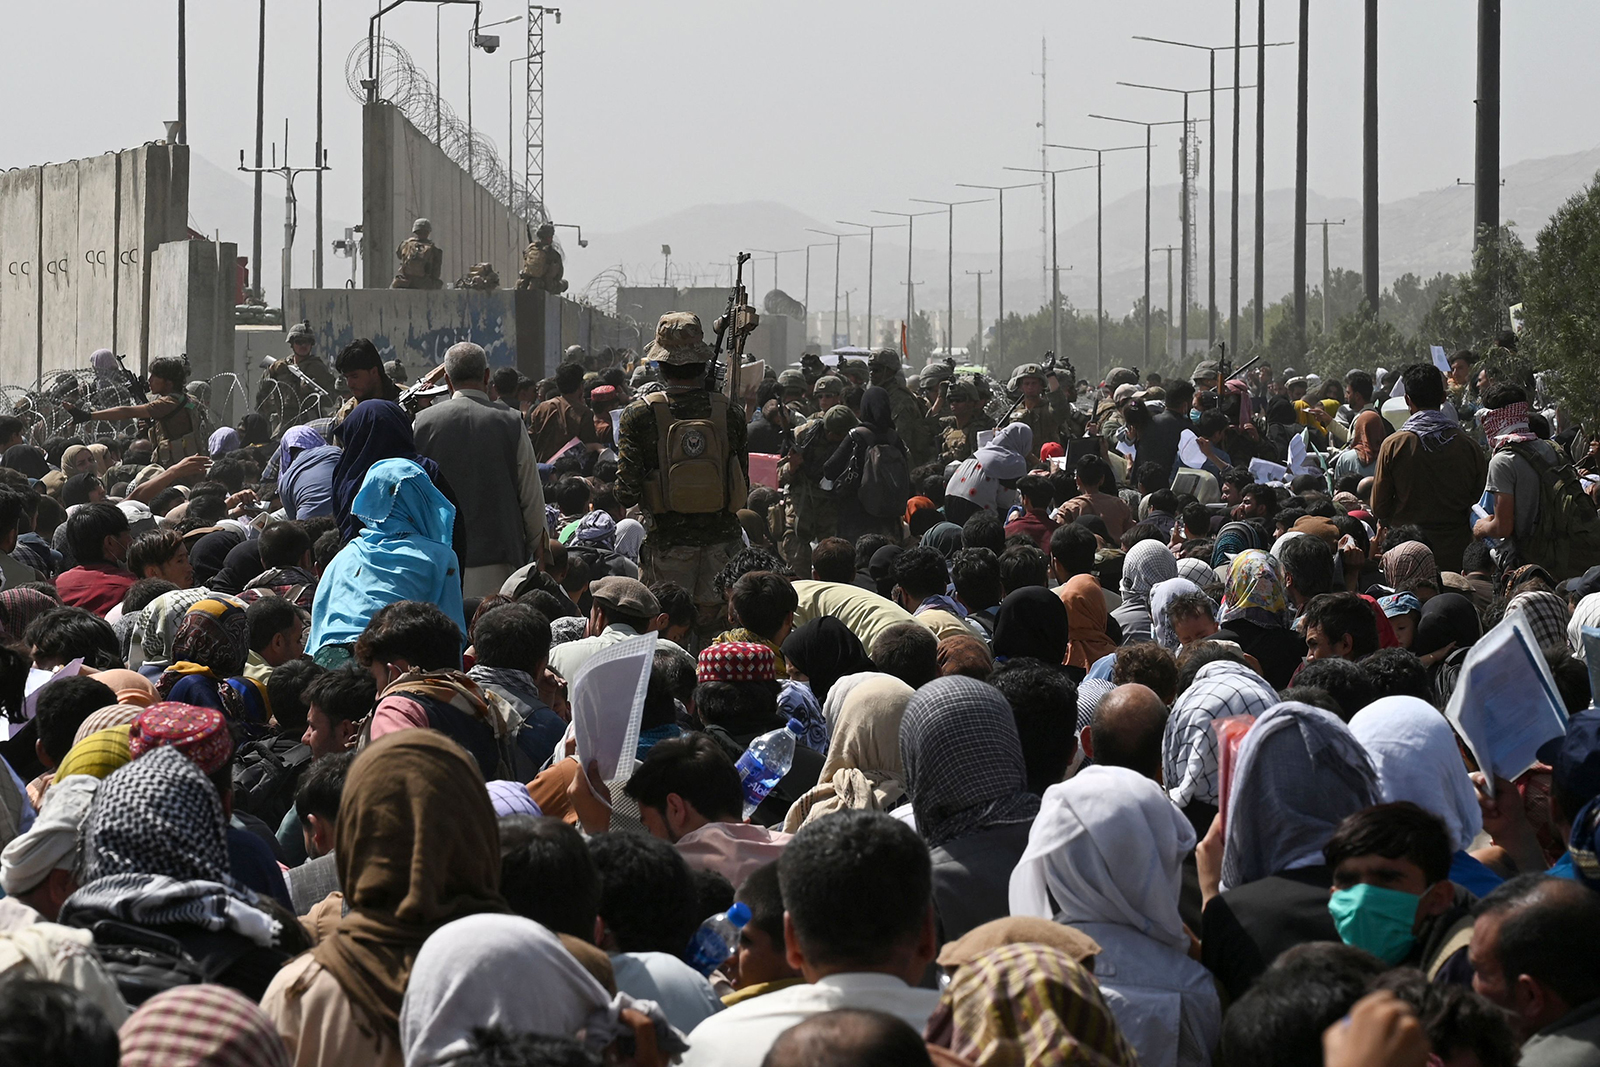 Afghans gather on a roadside near the military part of the airport in Kabul on August 20.